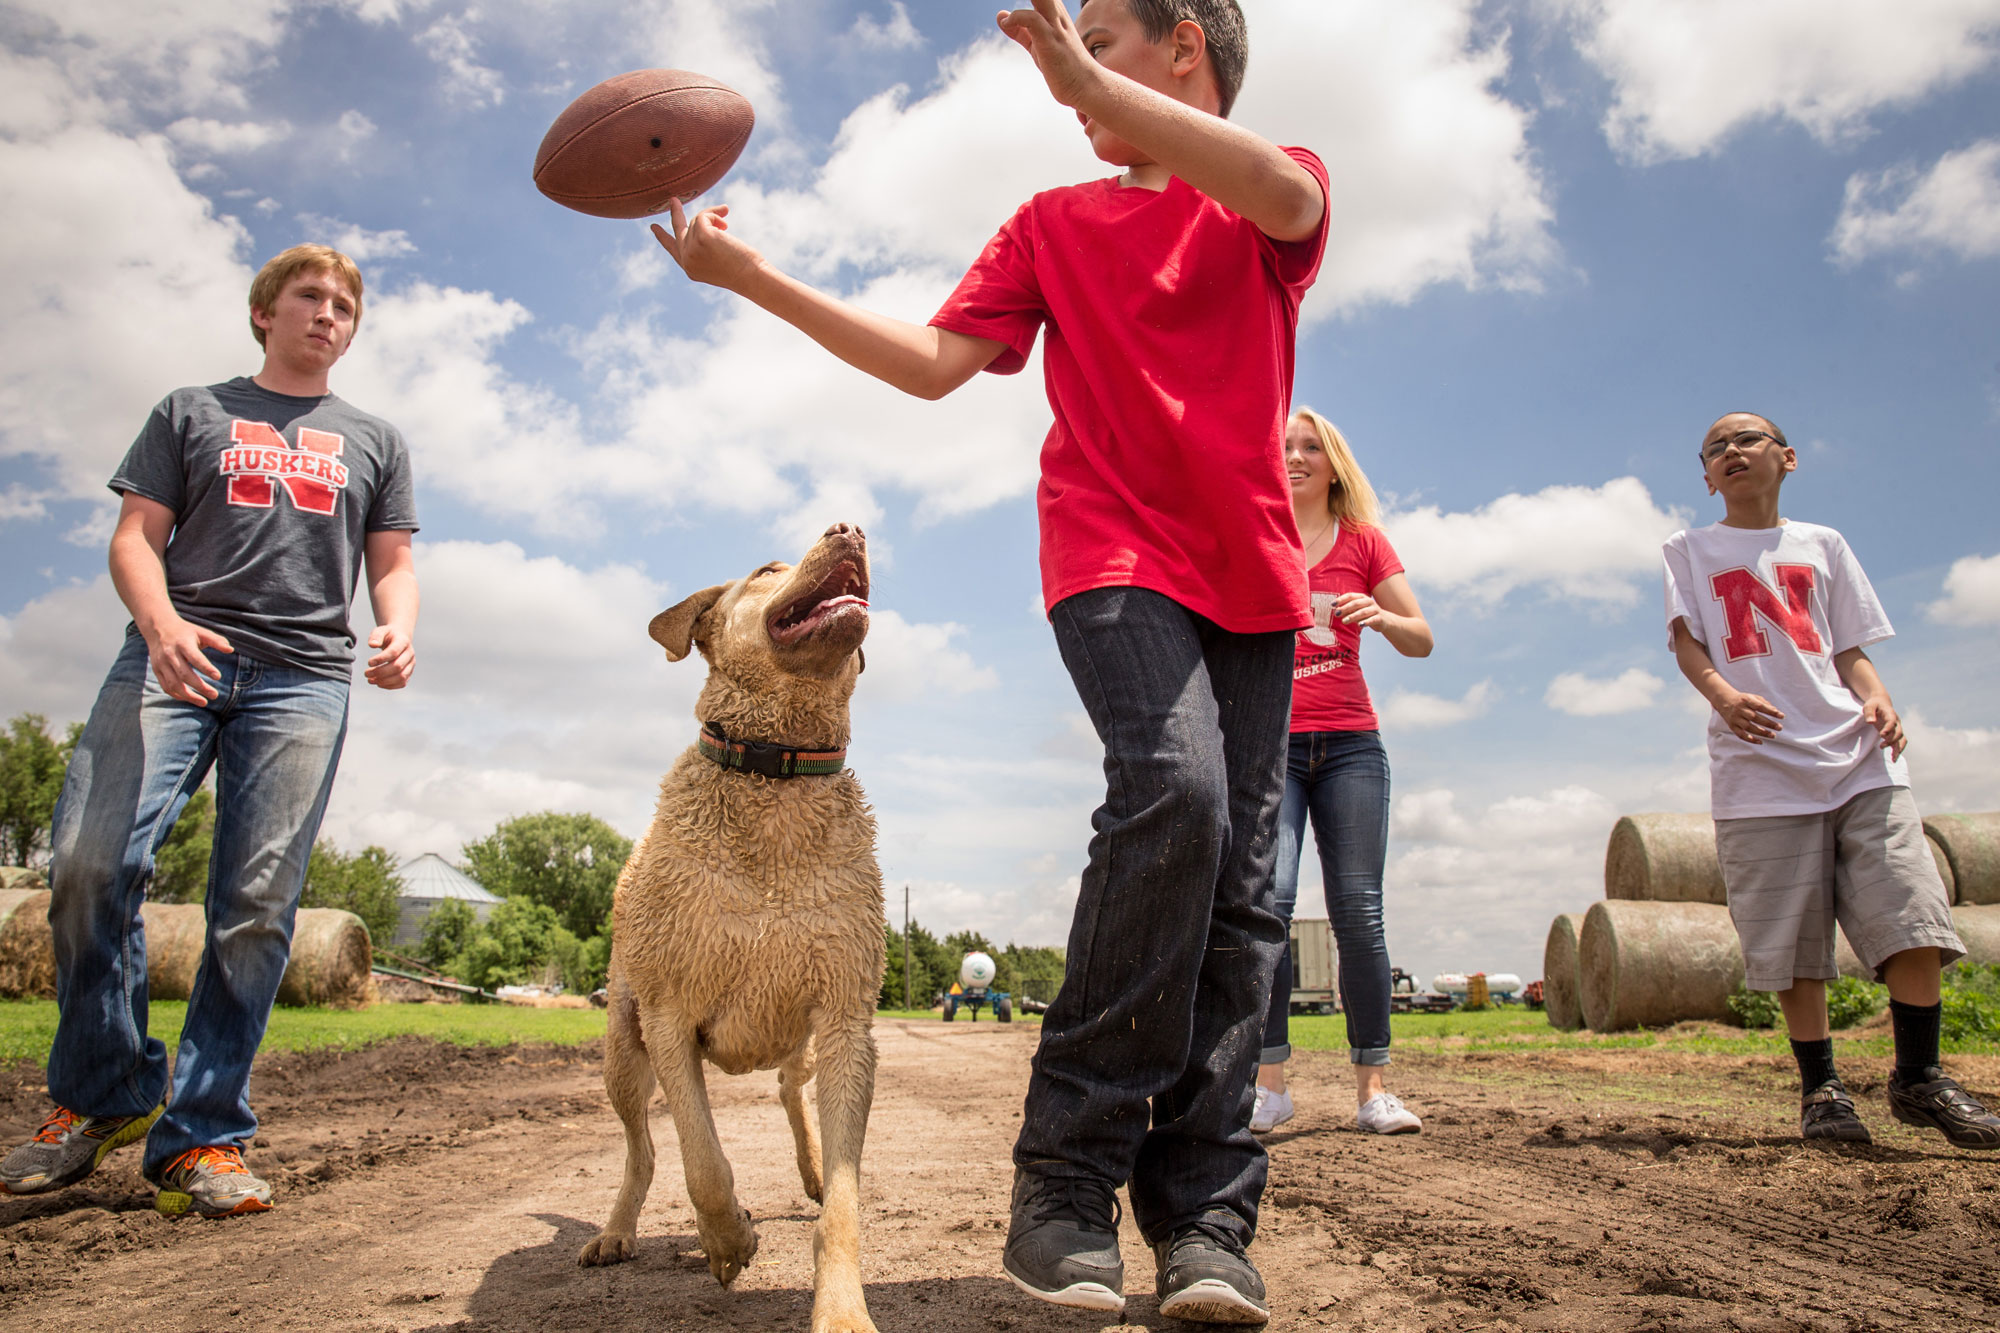 Family with dog throwing football in field.